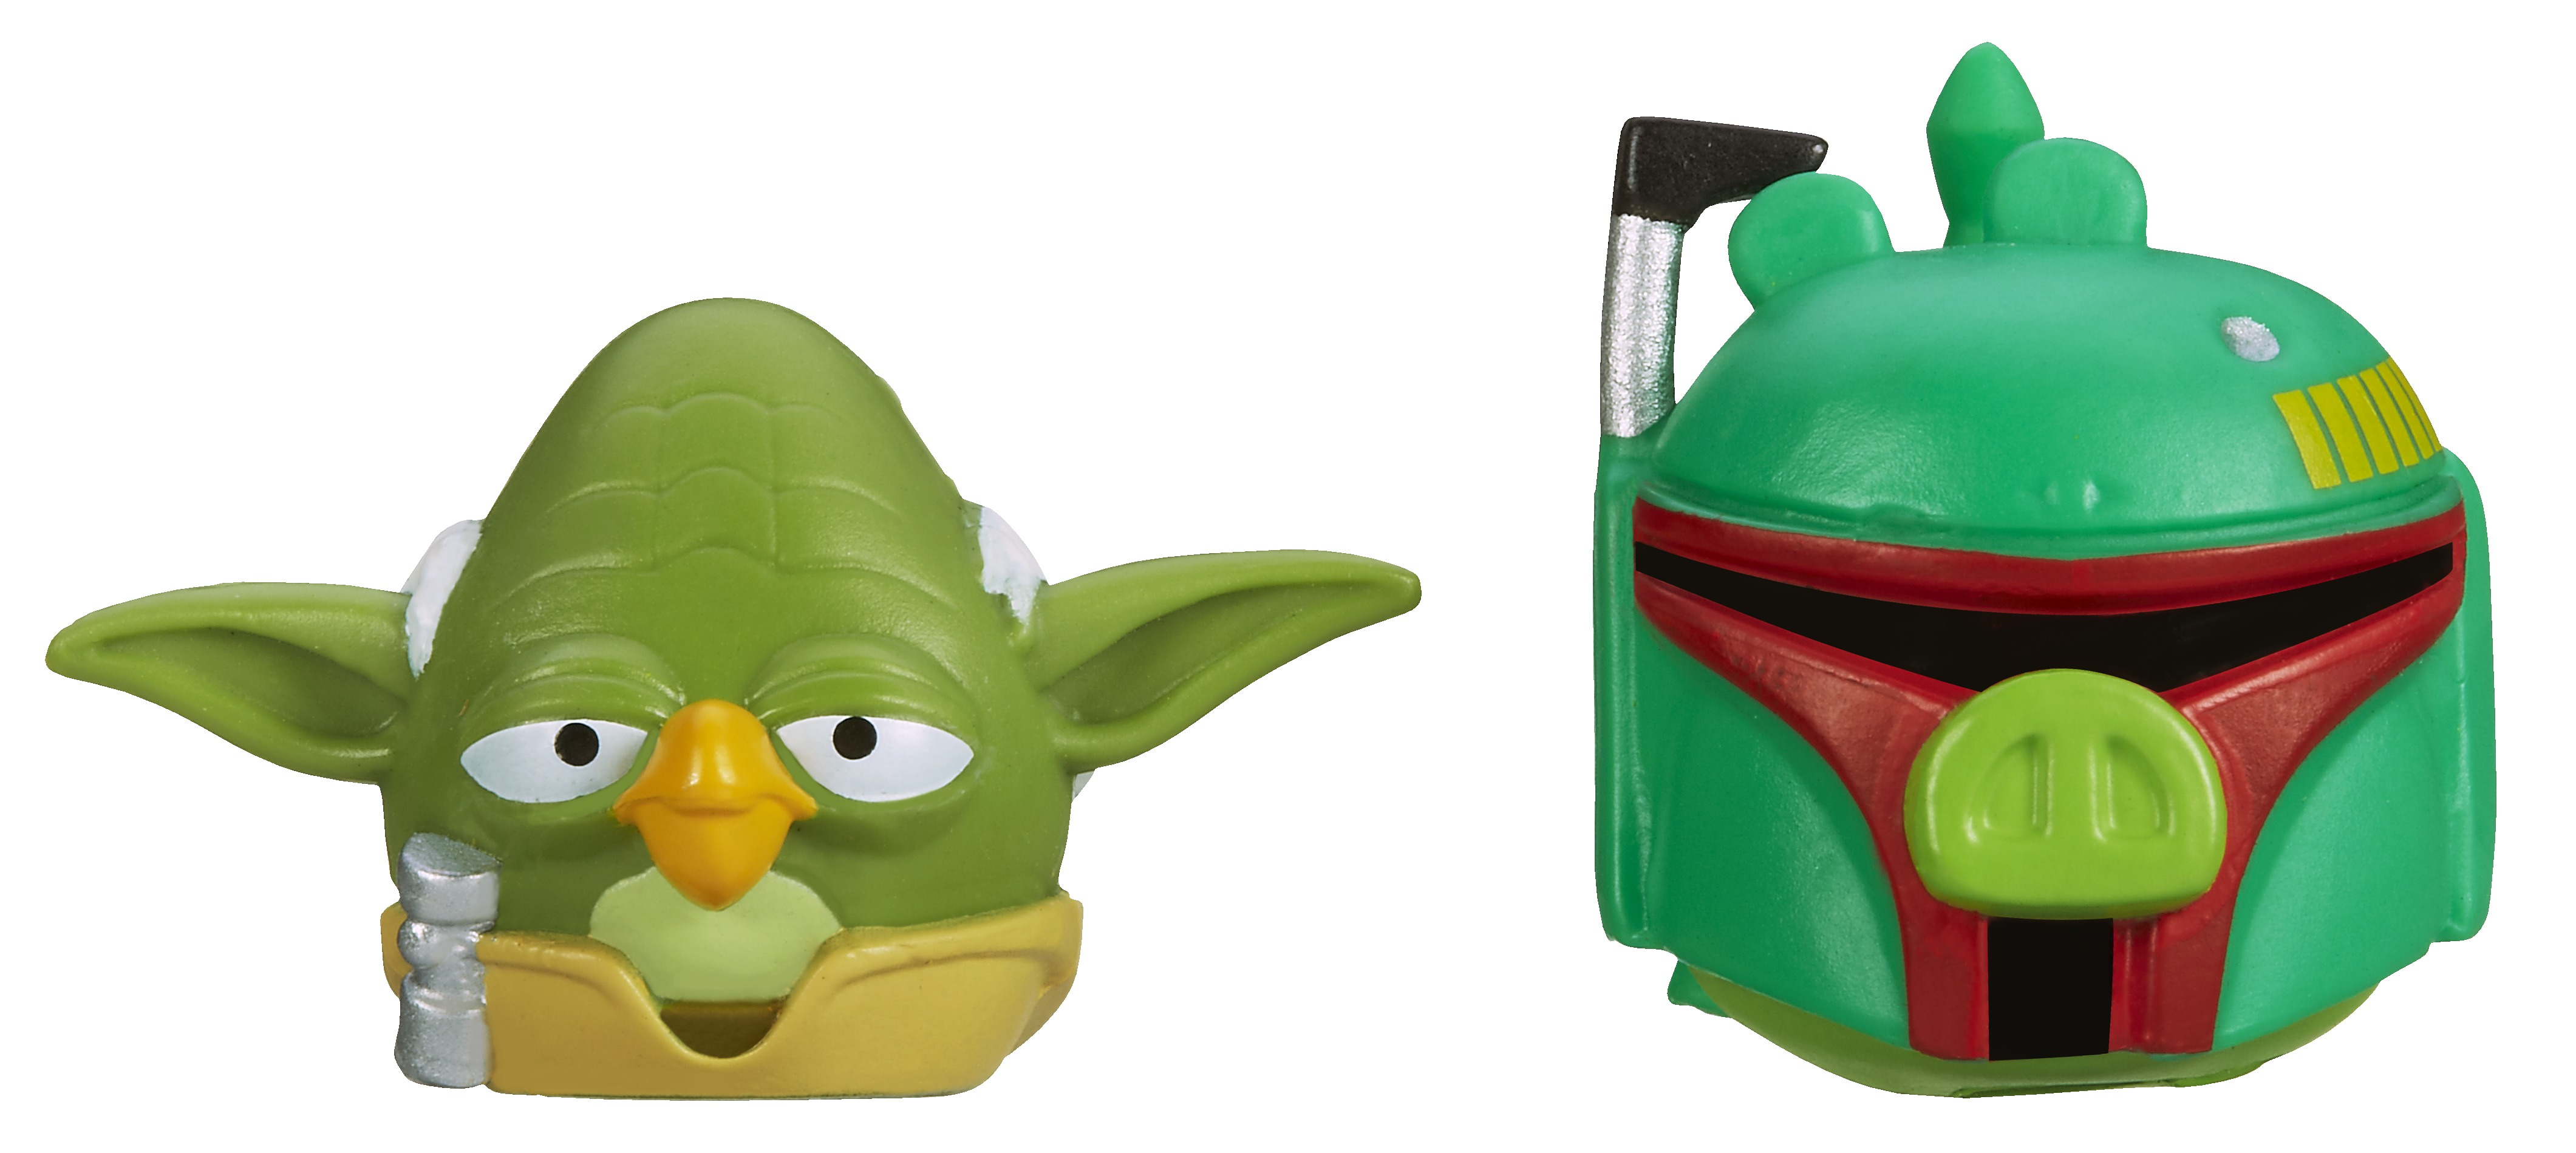 Angry Birds Star Wars Toys : High resolution angry birds star wars images the toyark